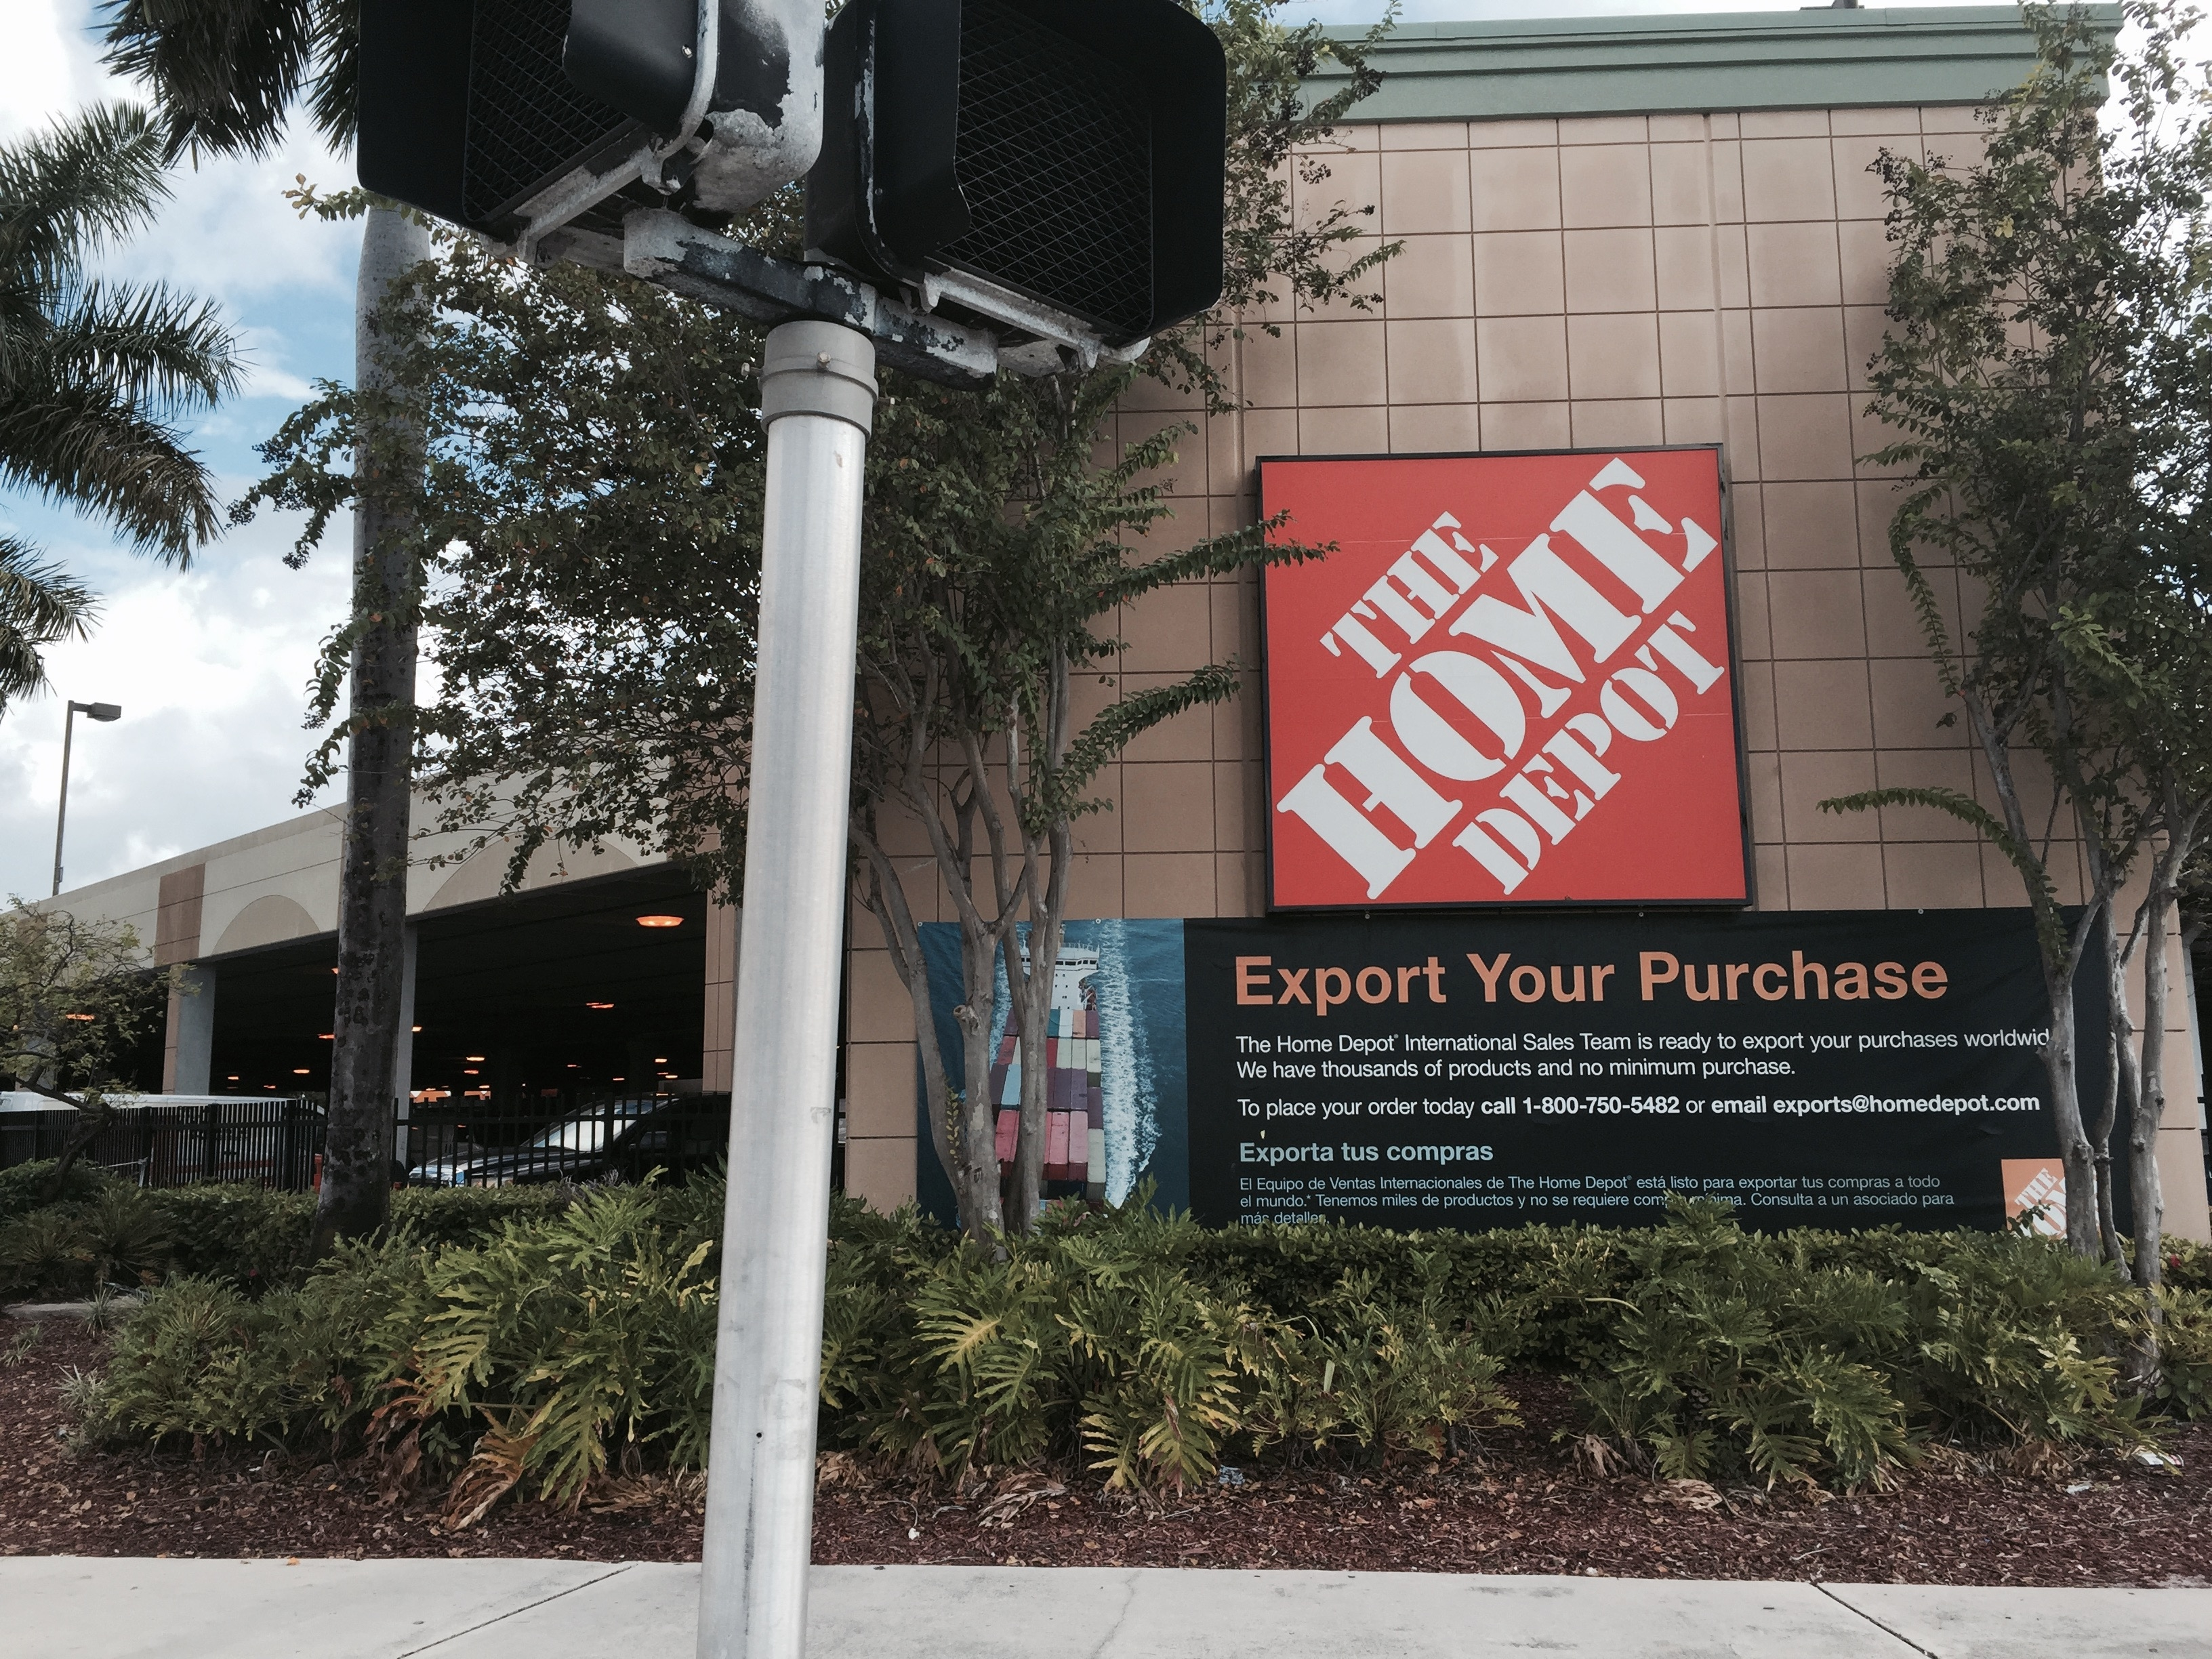 The Home Depot 1000 Northeast 4th Ave Fort Lauderdale FL